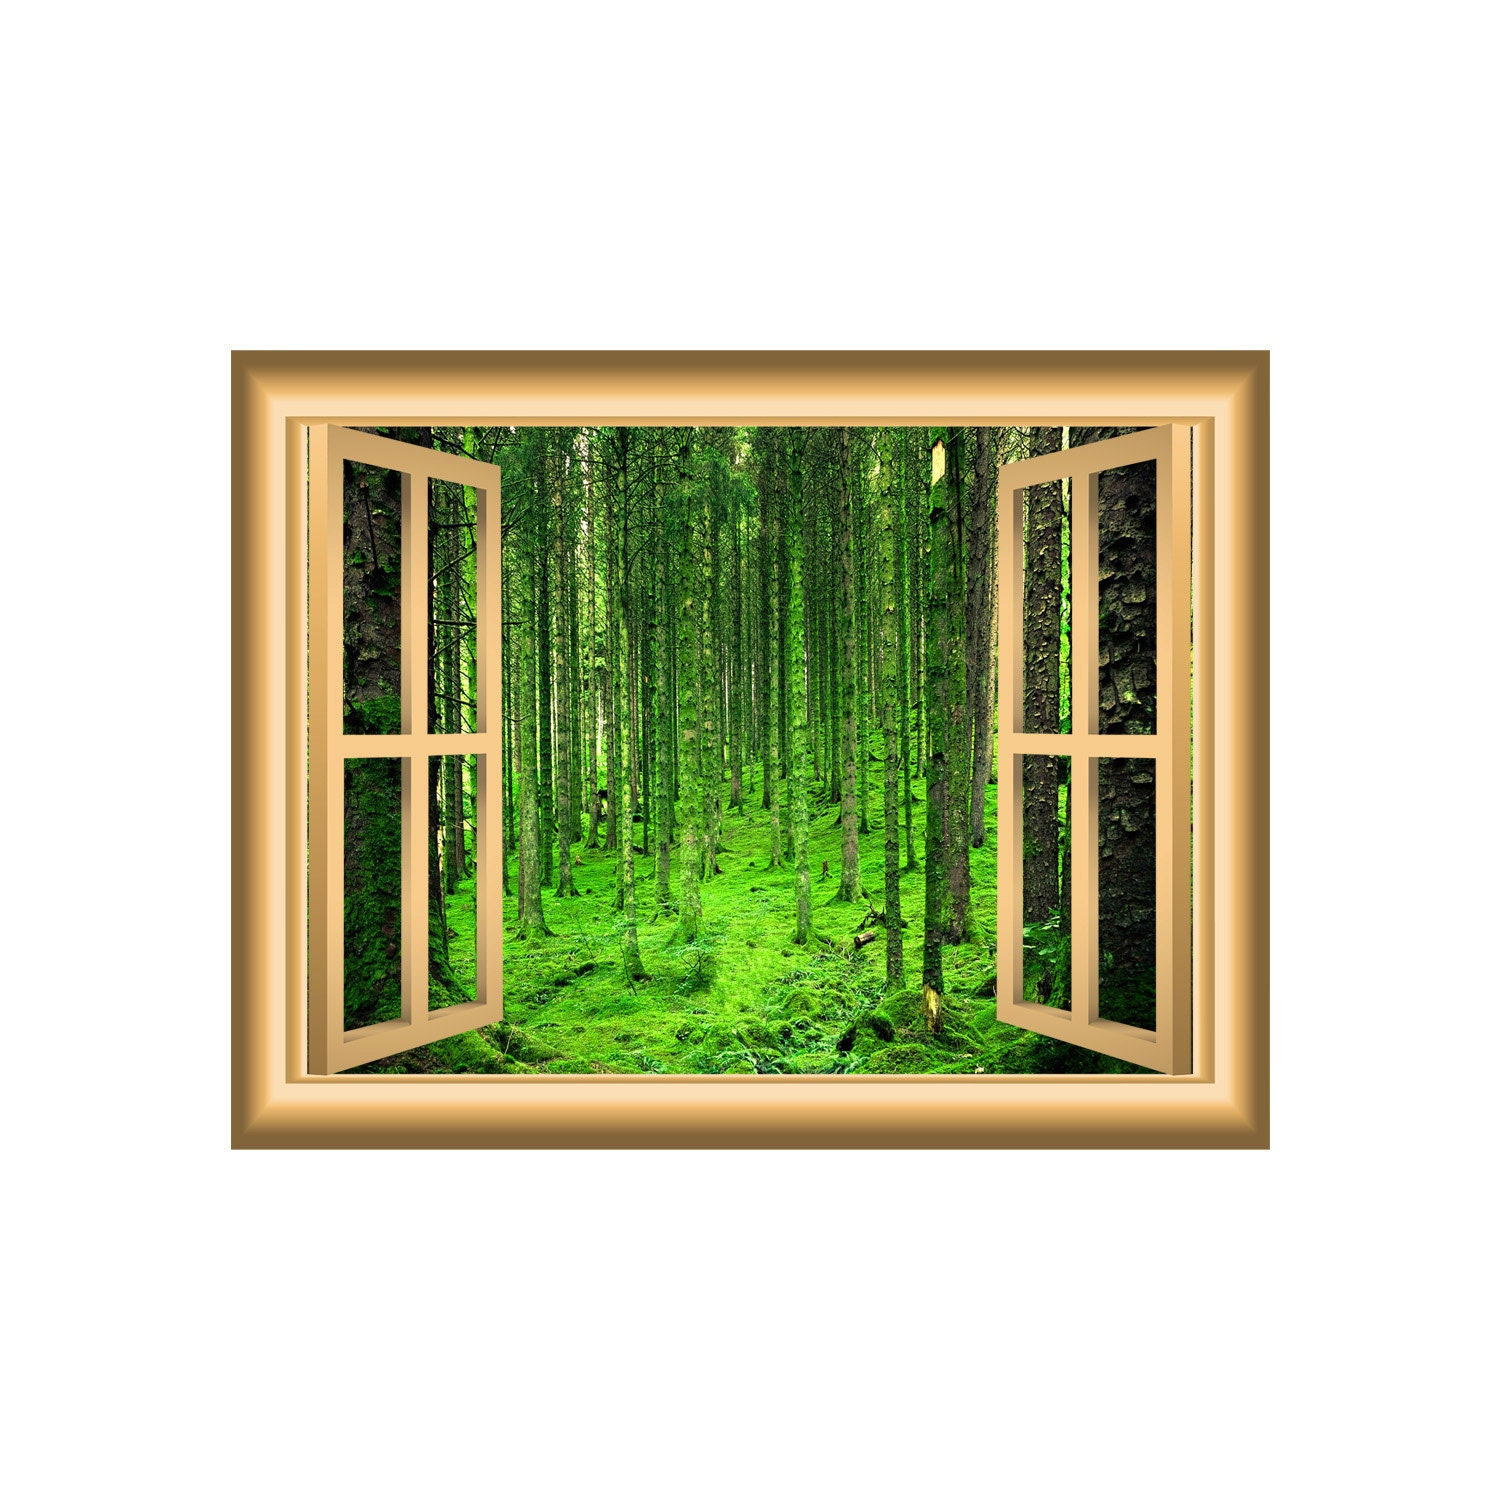 mossy forest nature 3d wall art decal forest window frame peel zoom